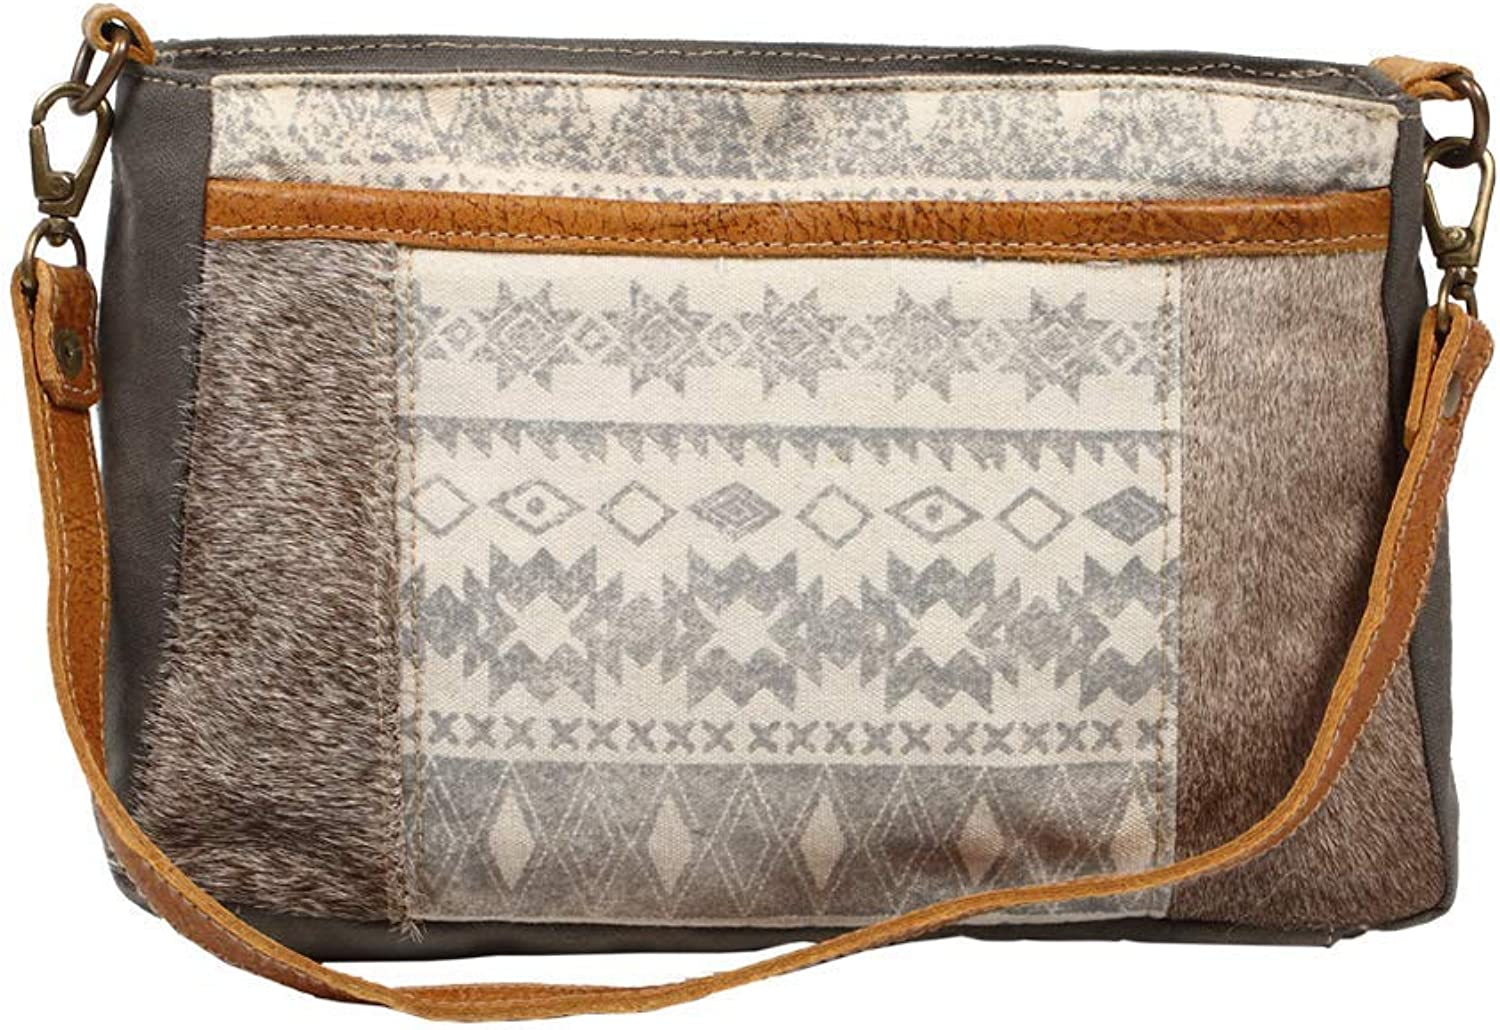 Myra Bag Classical Upcycled Canvas & Cowhide Leather Shoulder Bag S1222